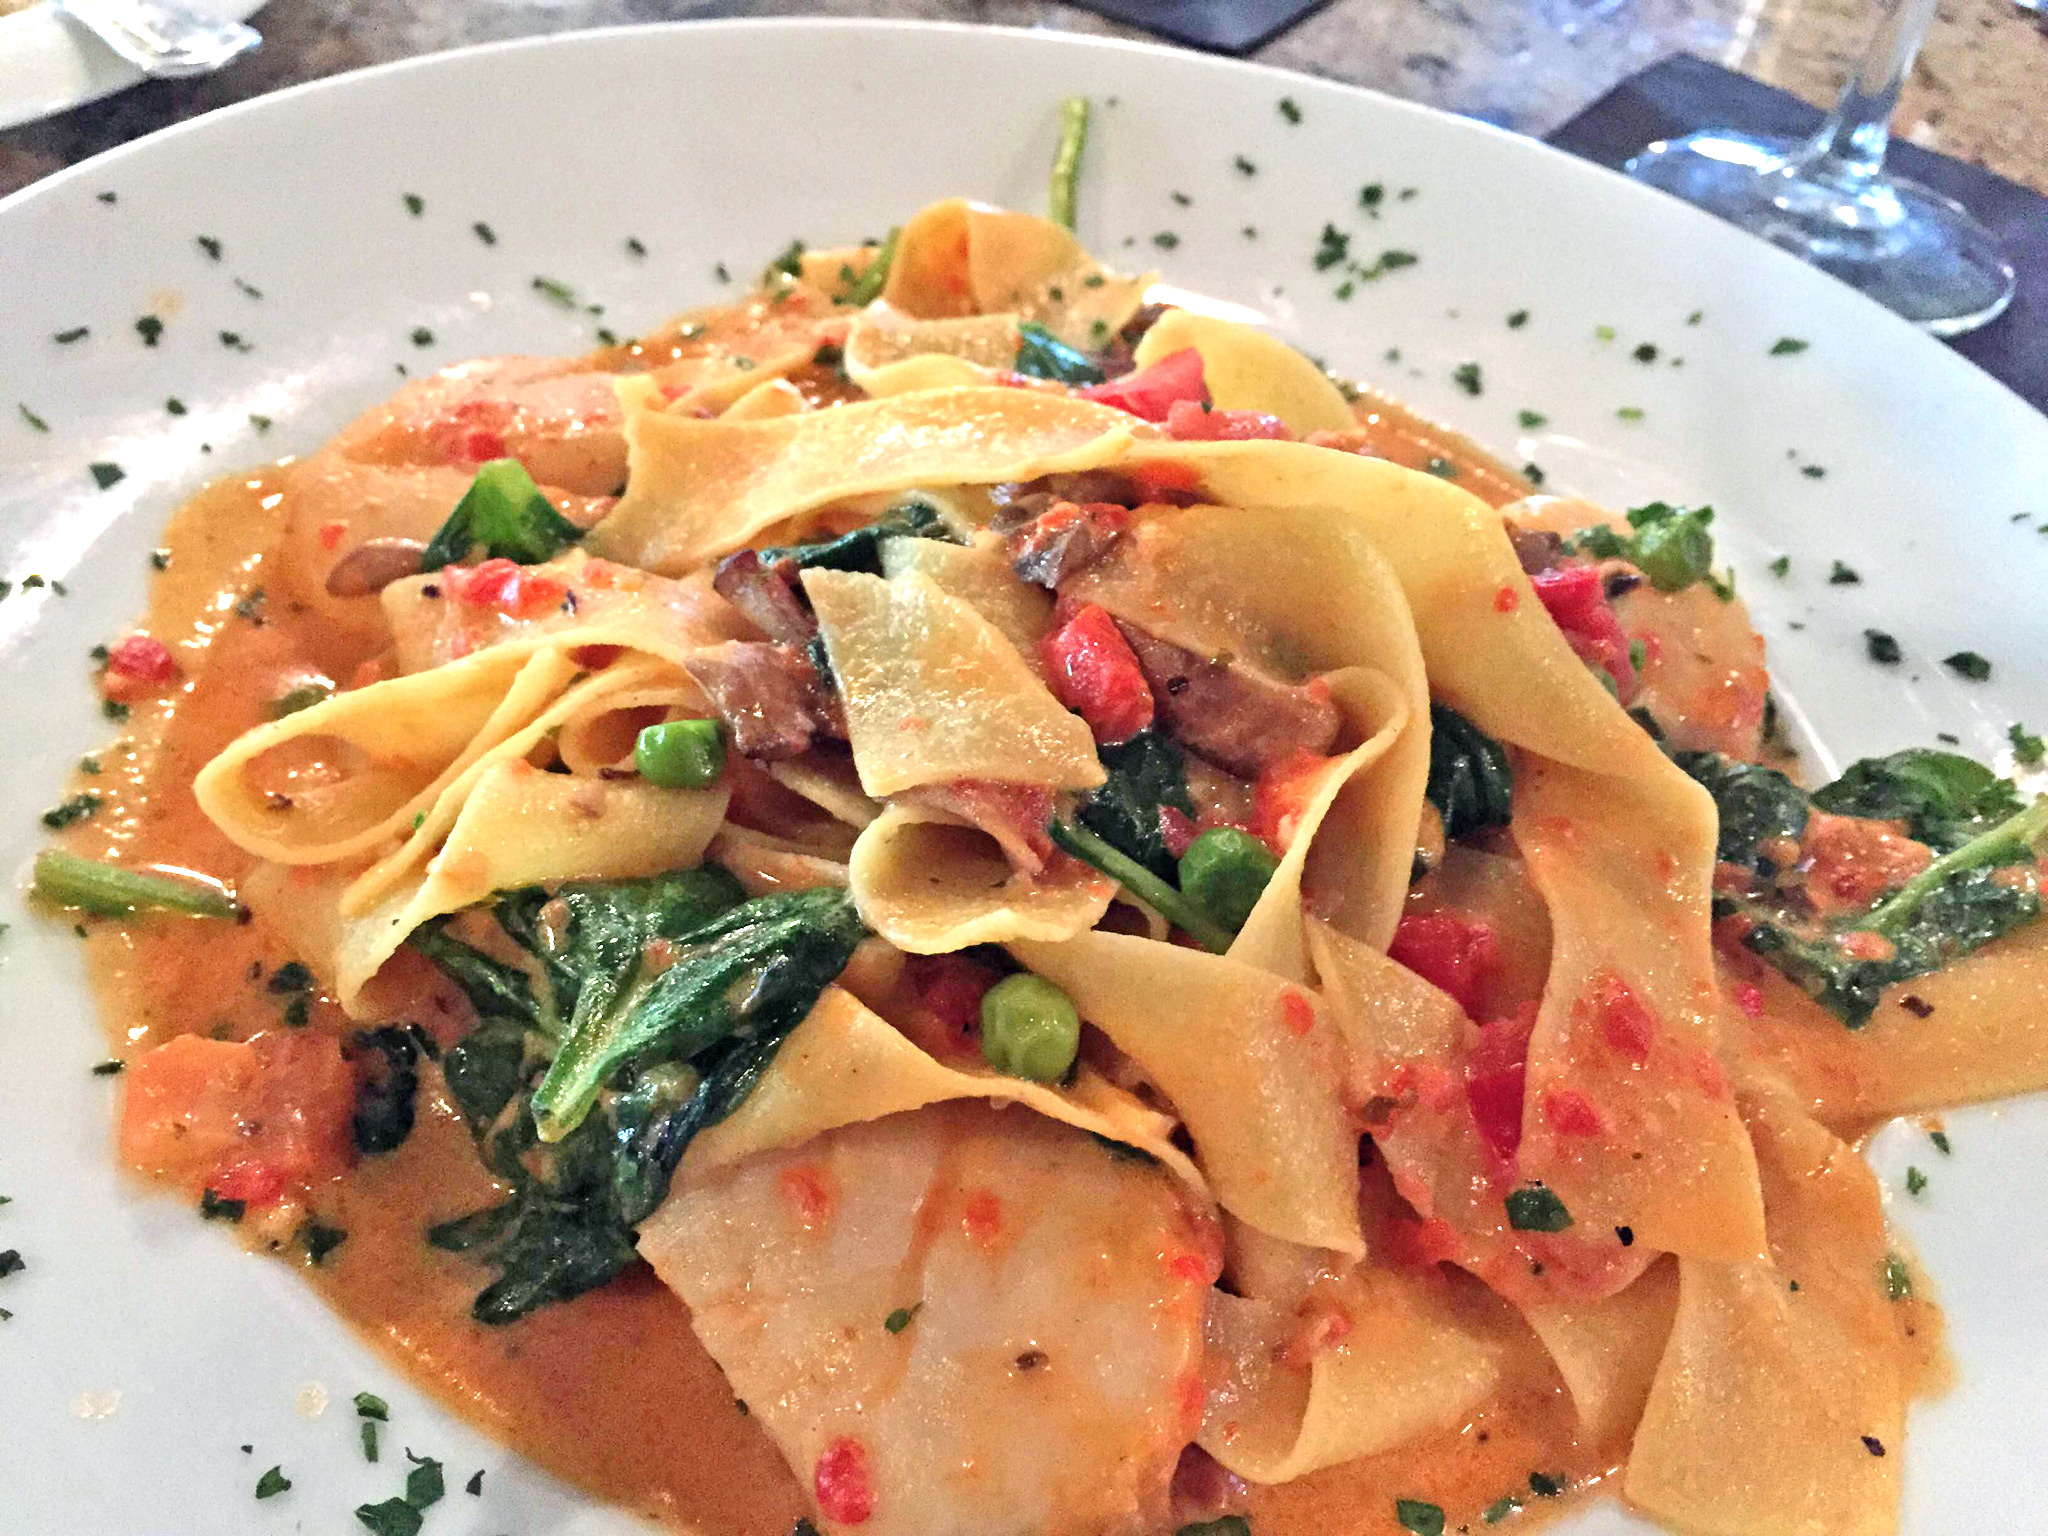 10 Best Italian Restaurants in St. Petersburg, FL 2016